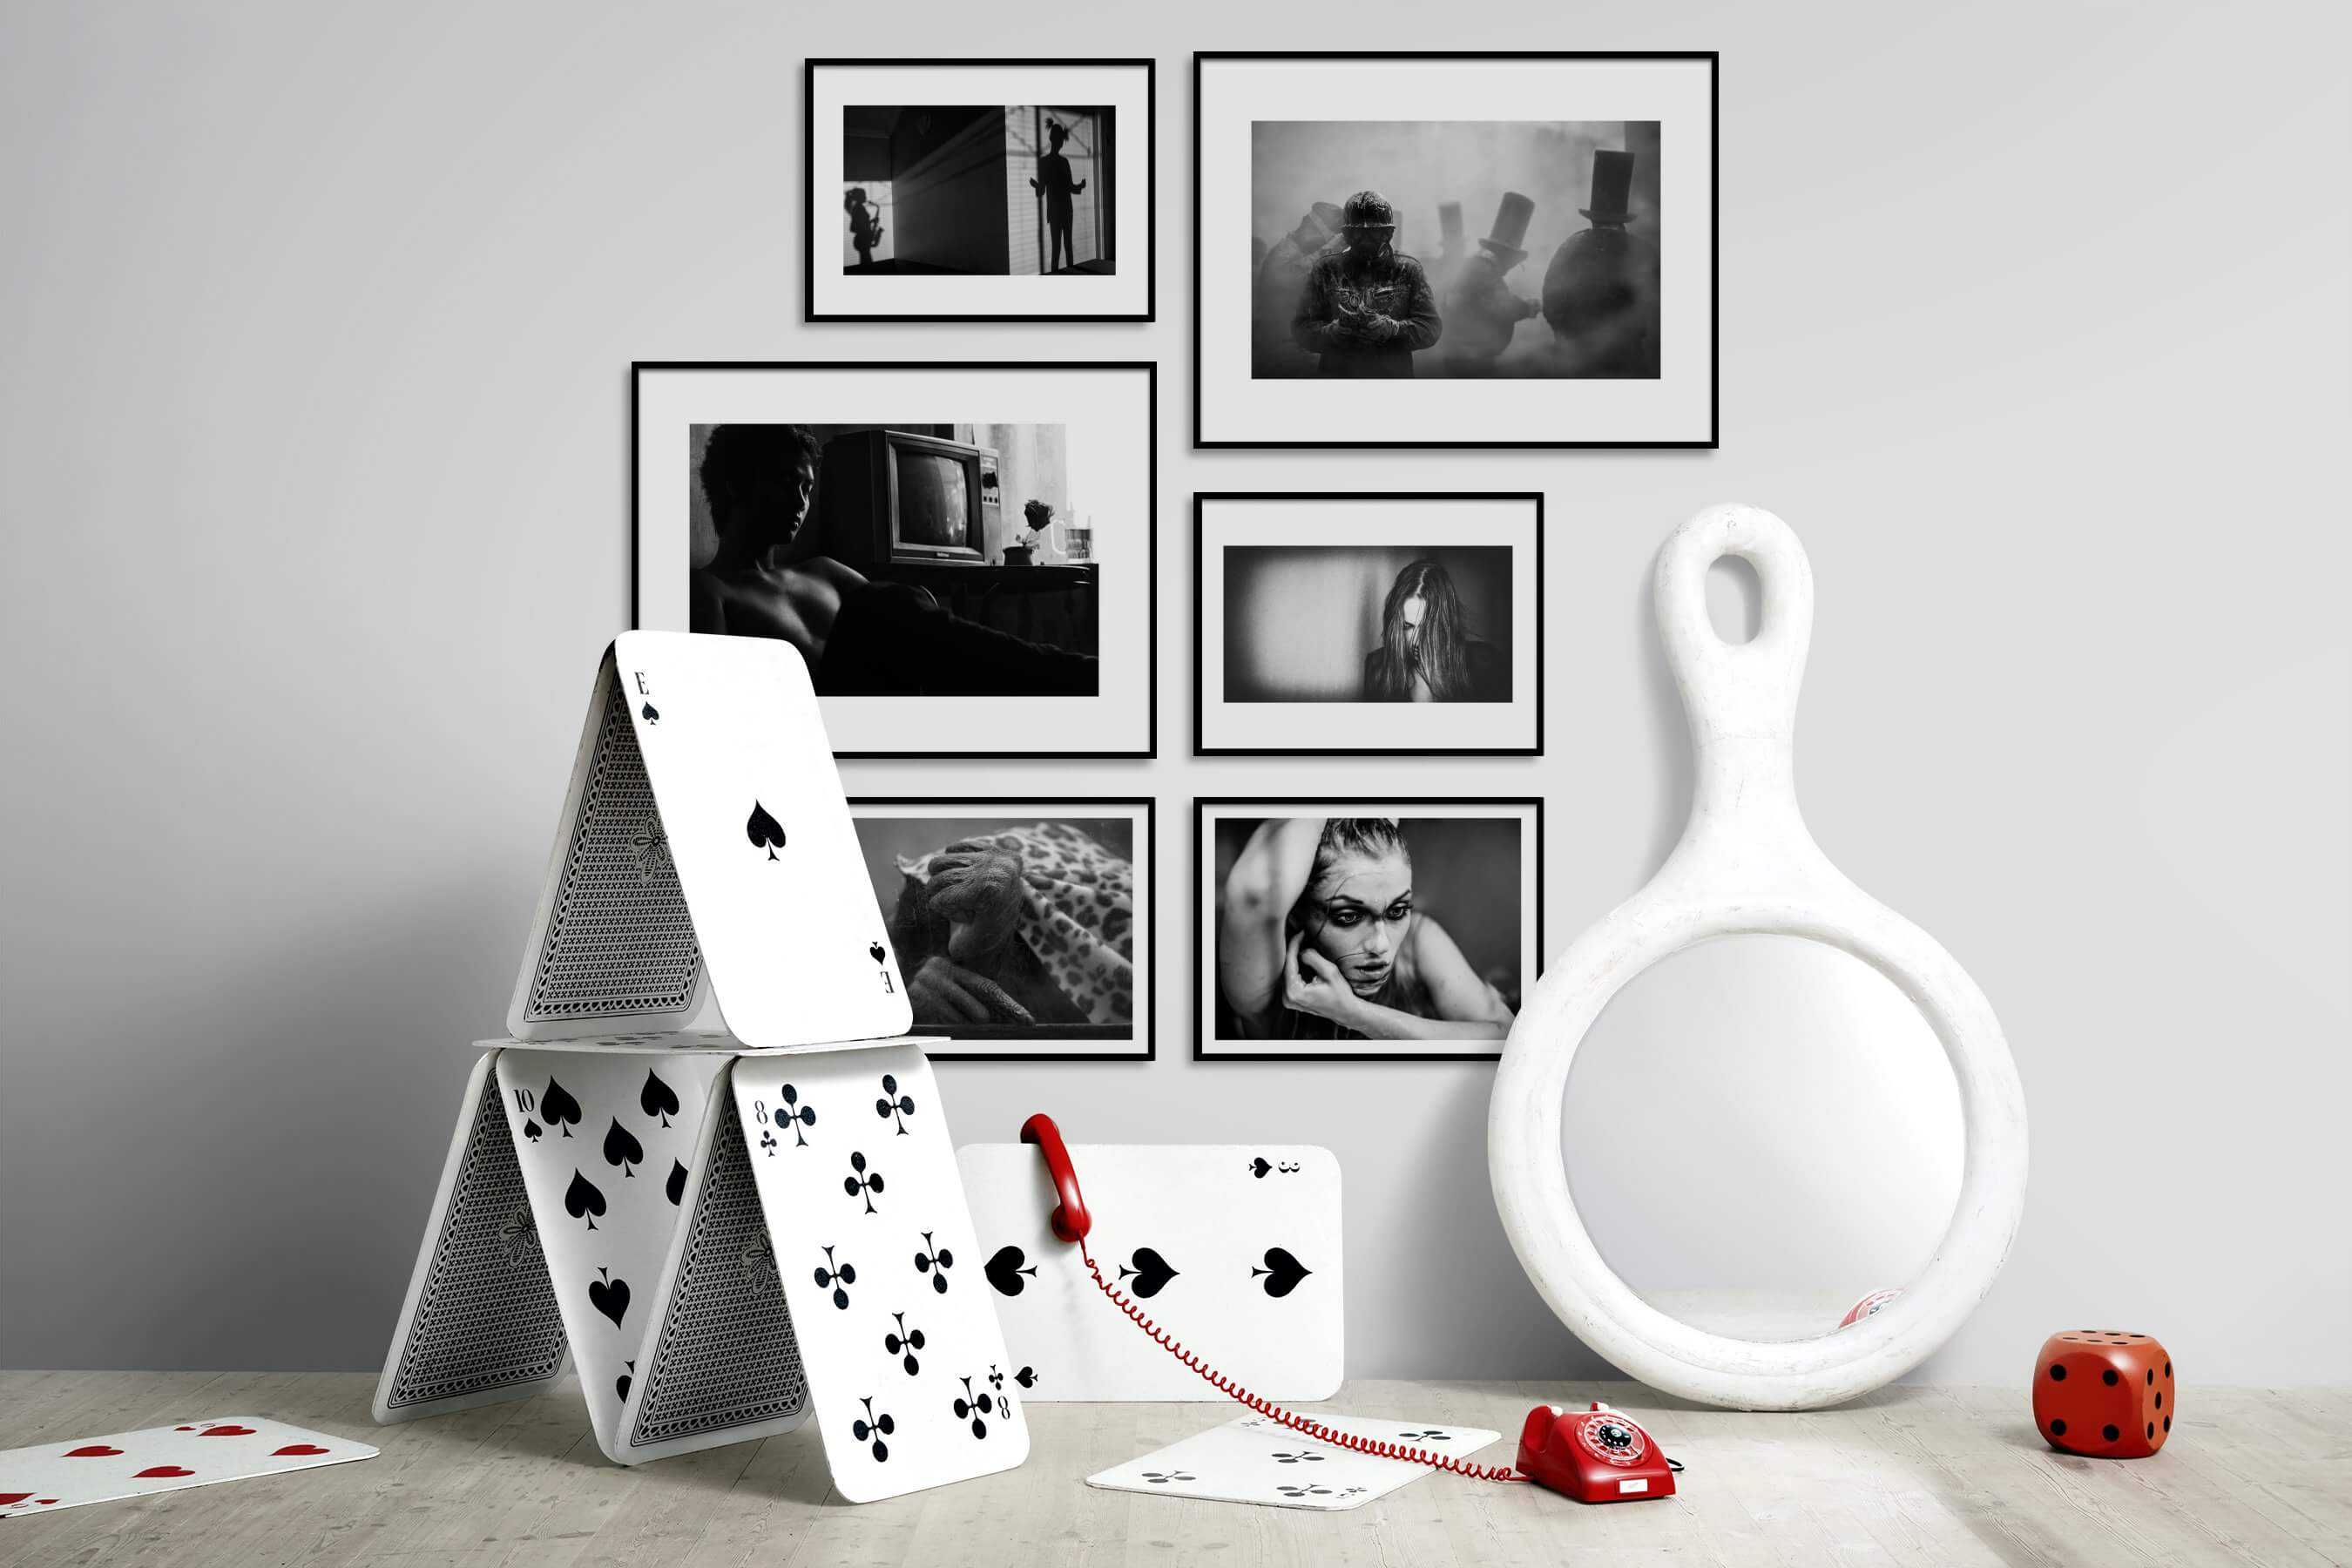 Gallery wall idea with six framed pictures arranged on a wall depicting Artsy, Black & White, Vintage, Fashion & Beauty, and For the Minimalist